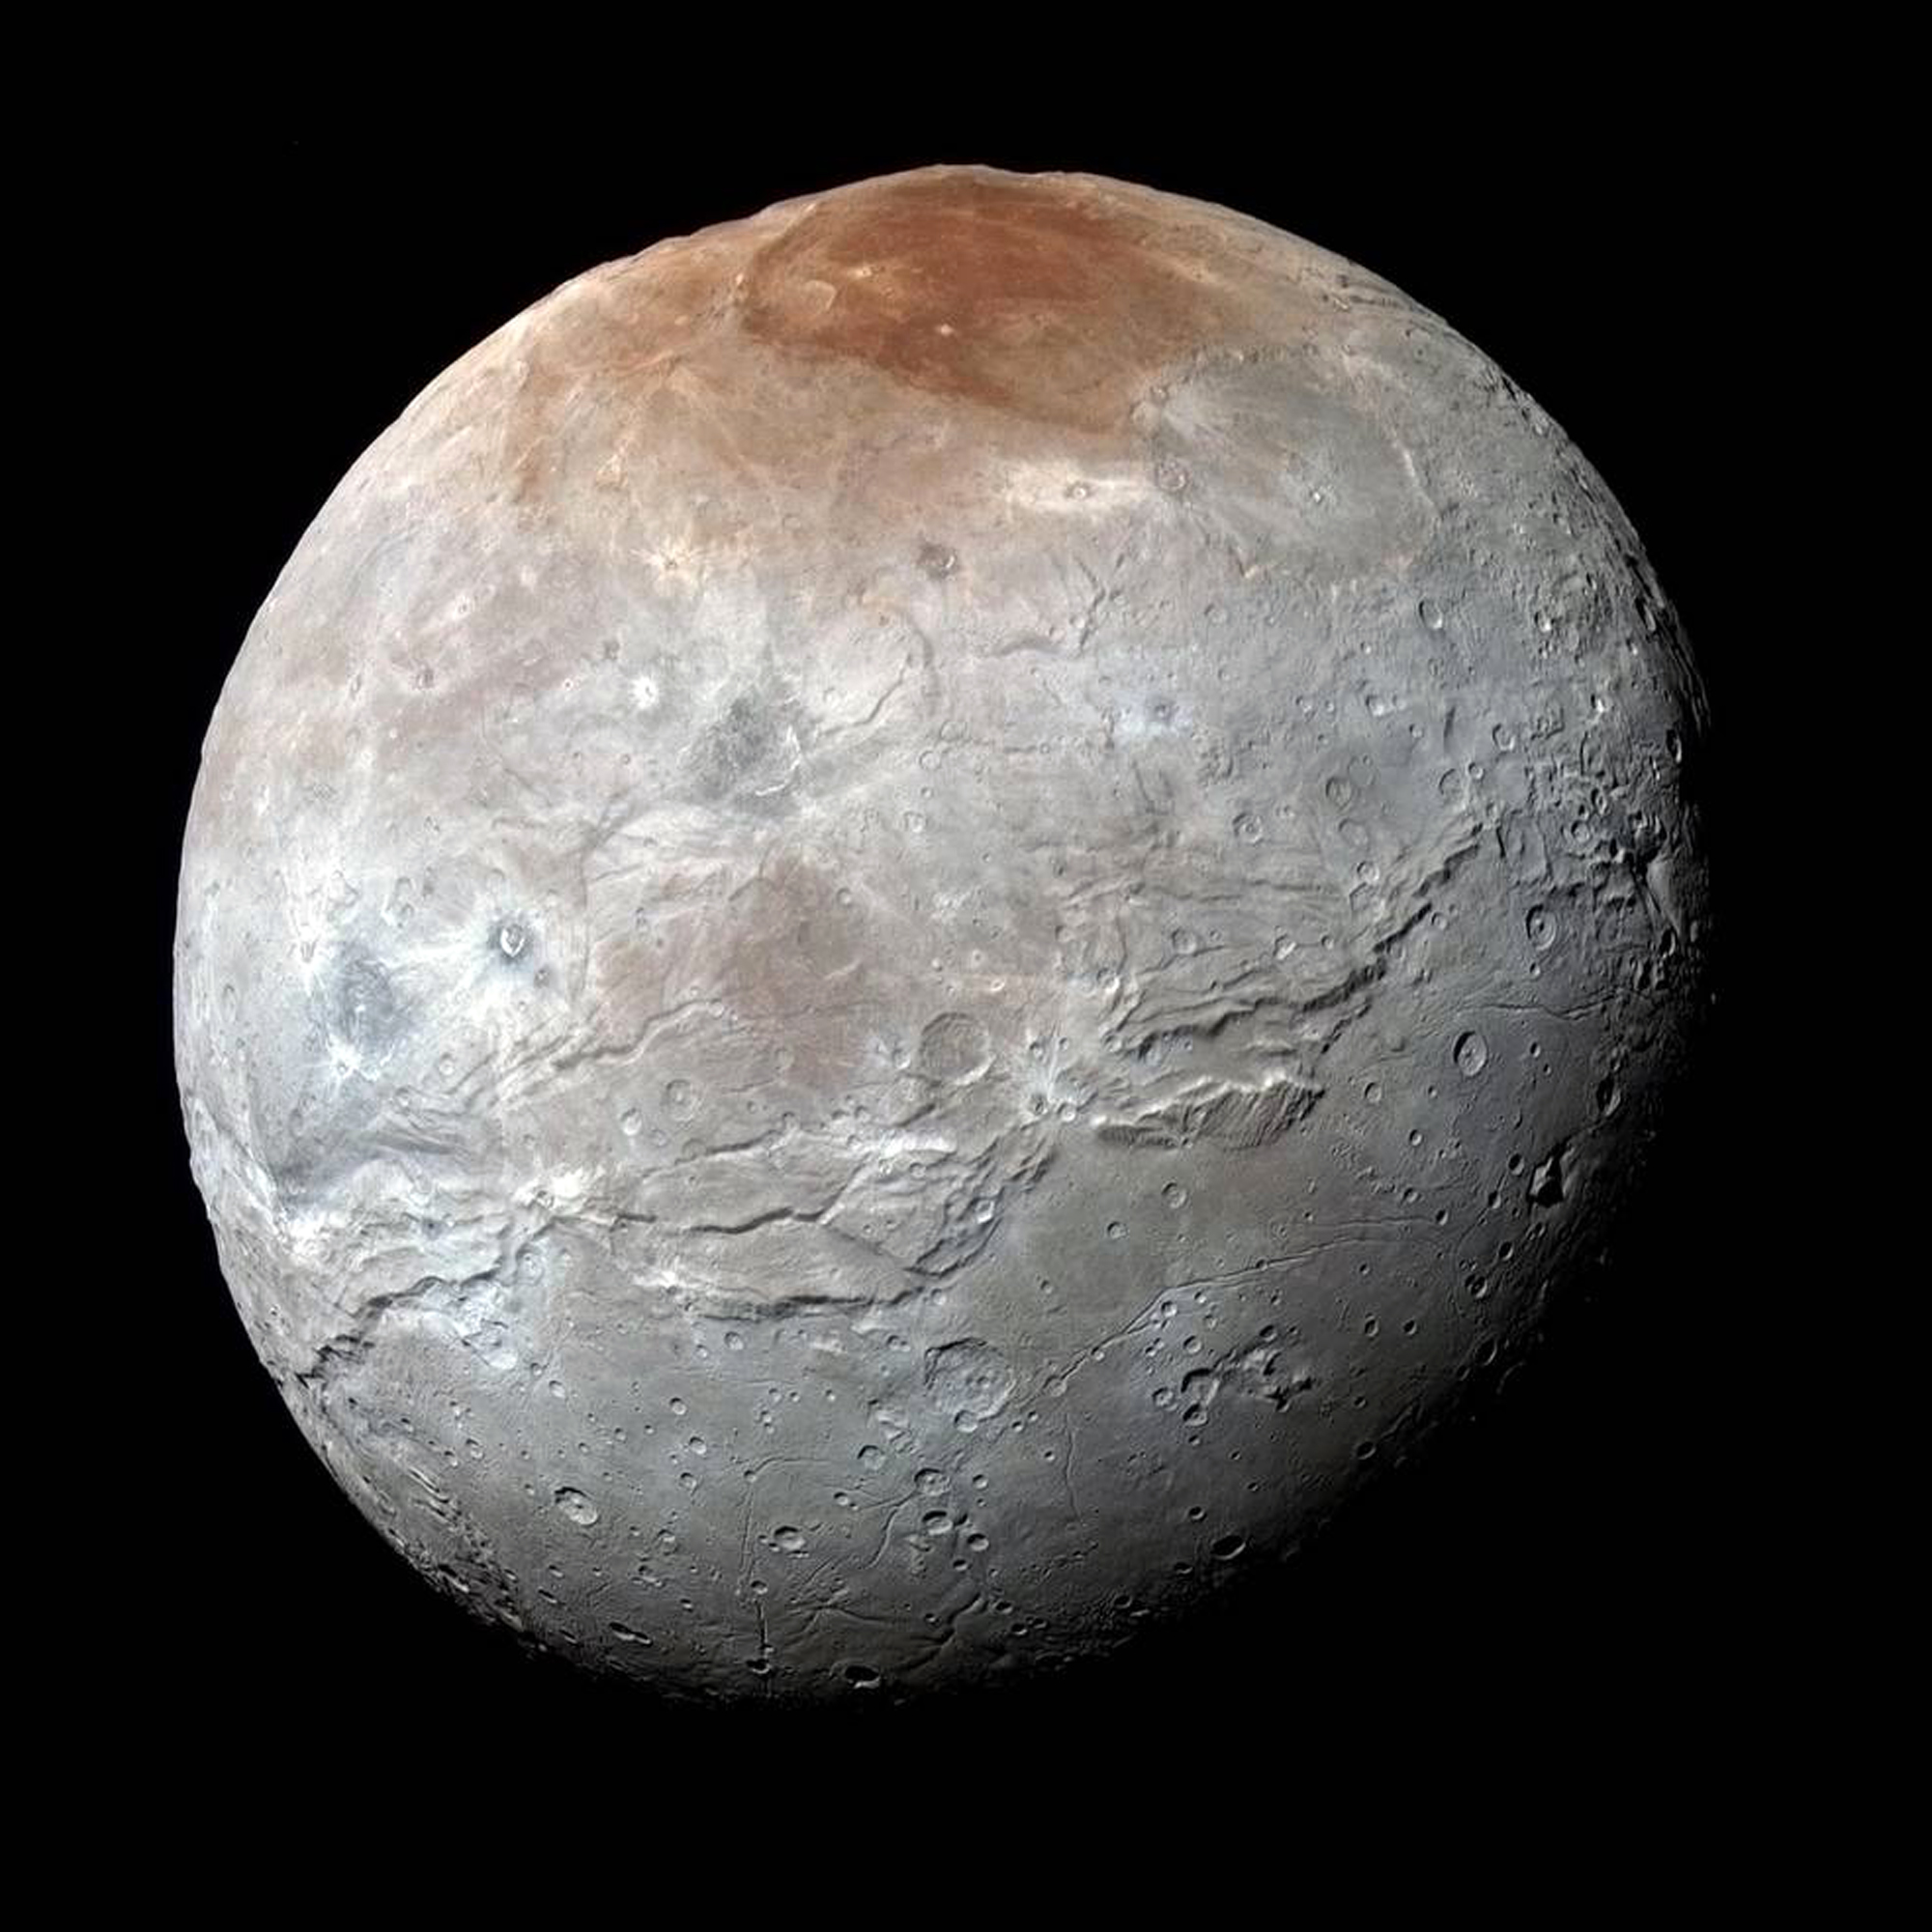 This image released by NASA on Thursday, Oct. 1, 2015, shows Charon, in enhanced color by captured by NASA's New Horizons captured just before closest approach on July 14, 2015.